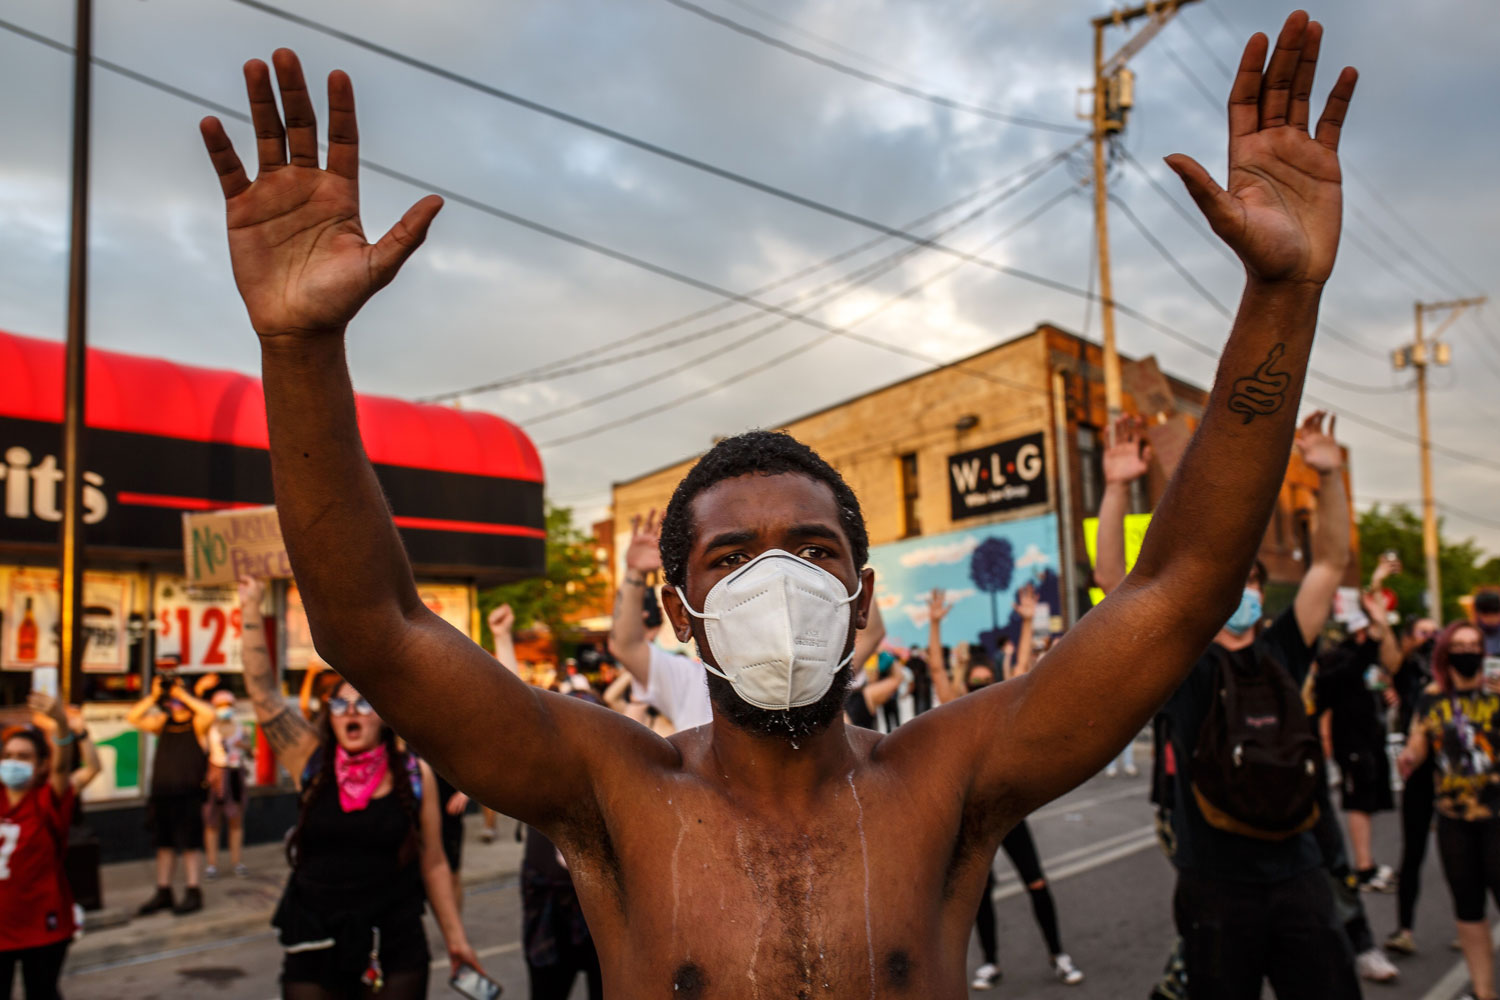 In the foreground, a shirtless man wearing a disposable face mask stands in a street, holding his hands in the air. Dozens of protesters behind him do the same.